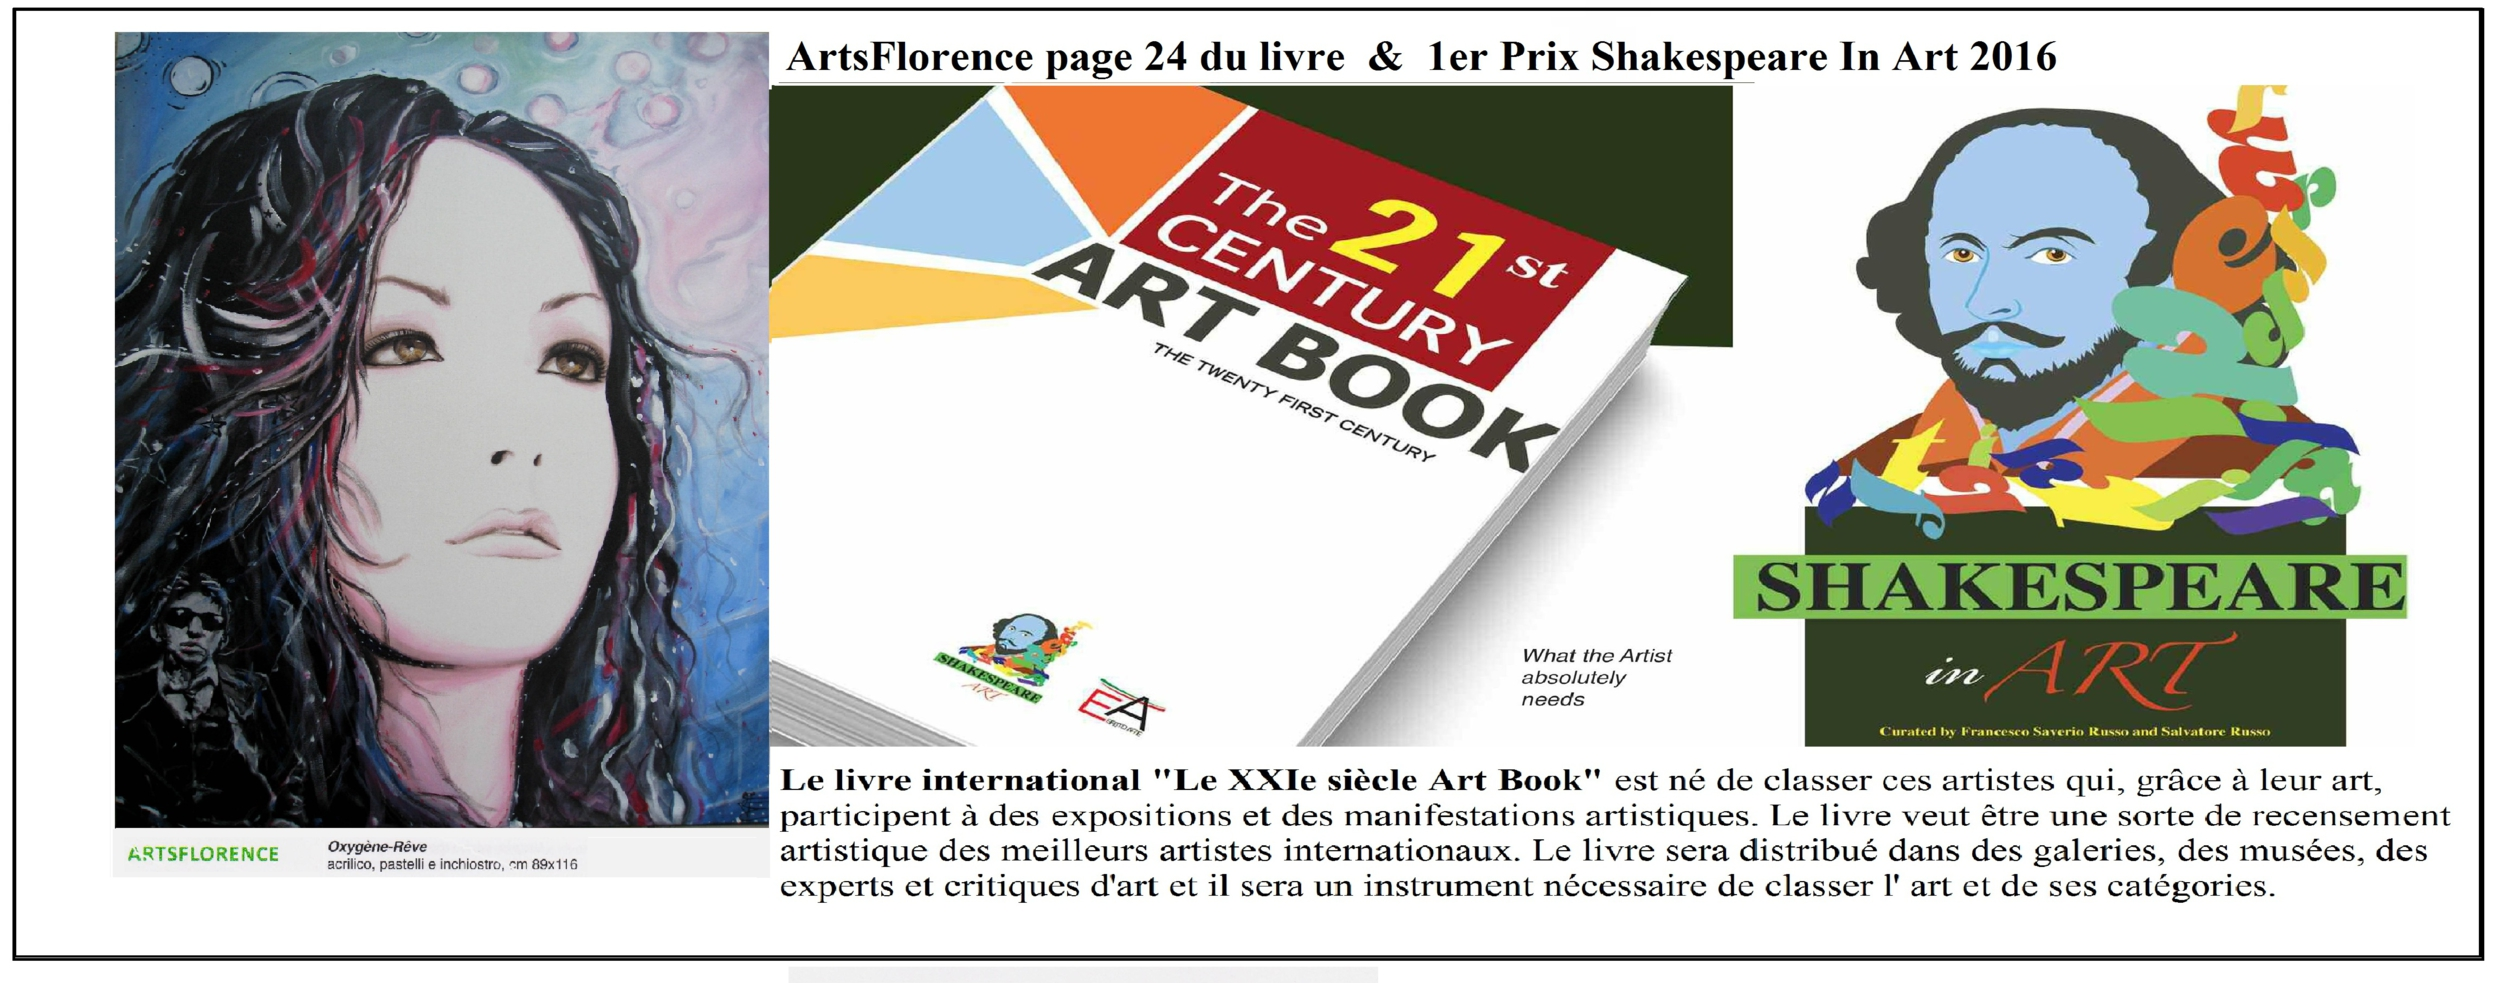 Arts florence présente dans le livre The twenty first century art book international